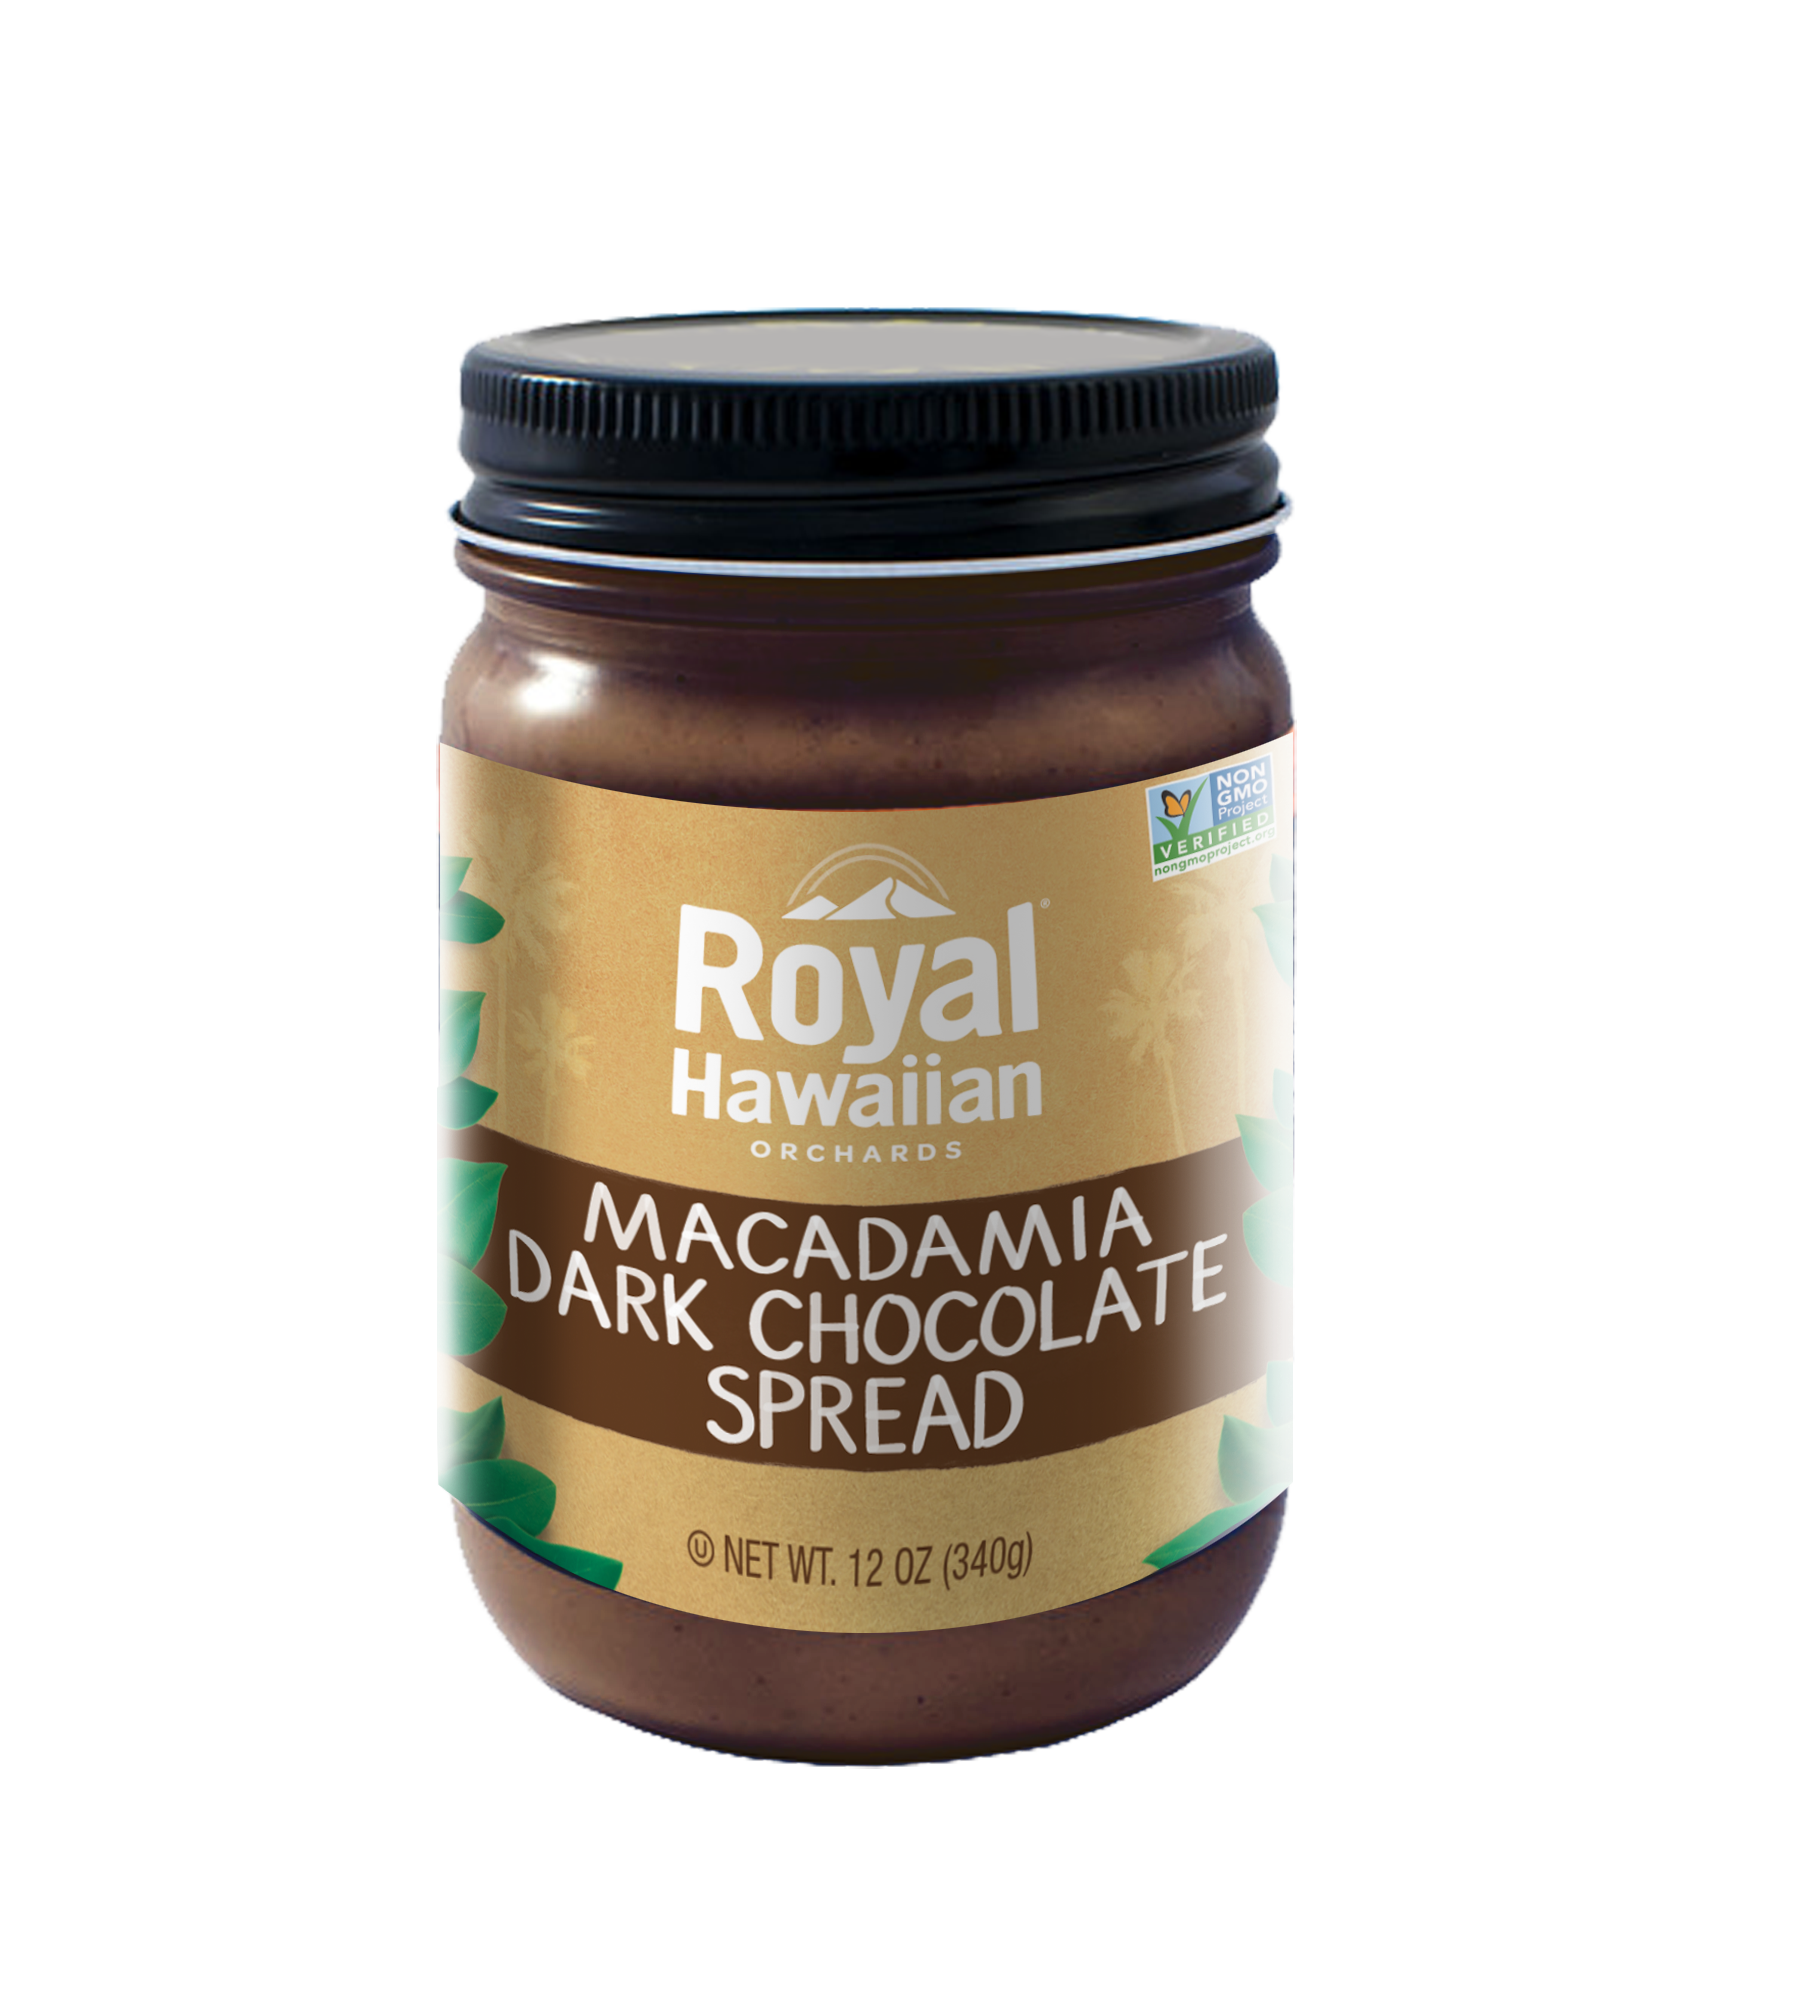 business decision for royal macadamia After nearly two years of fda review, the decision marks a significant step in the recognition of macadamia nuts as a potentially healthful food, which will benefit the entire macadamia nut industry.